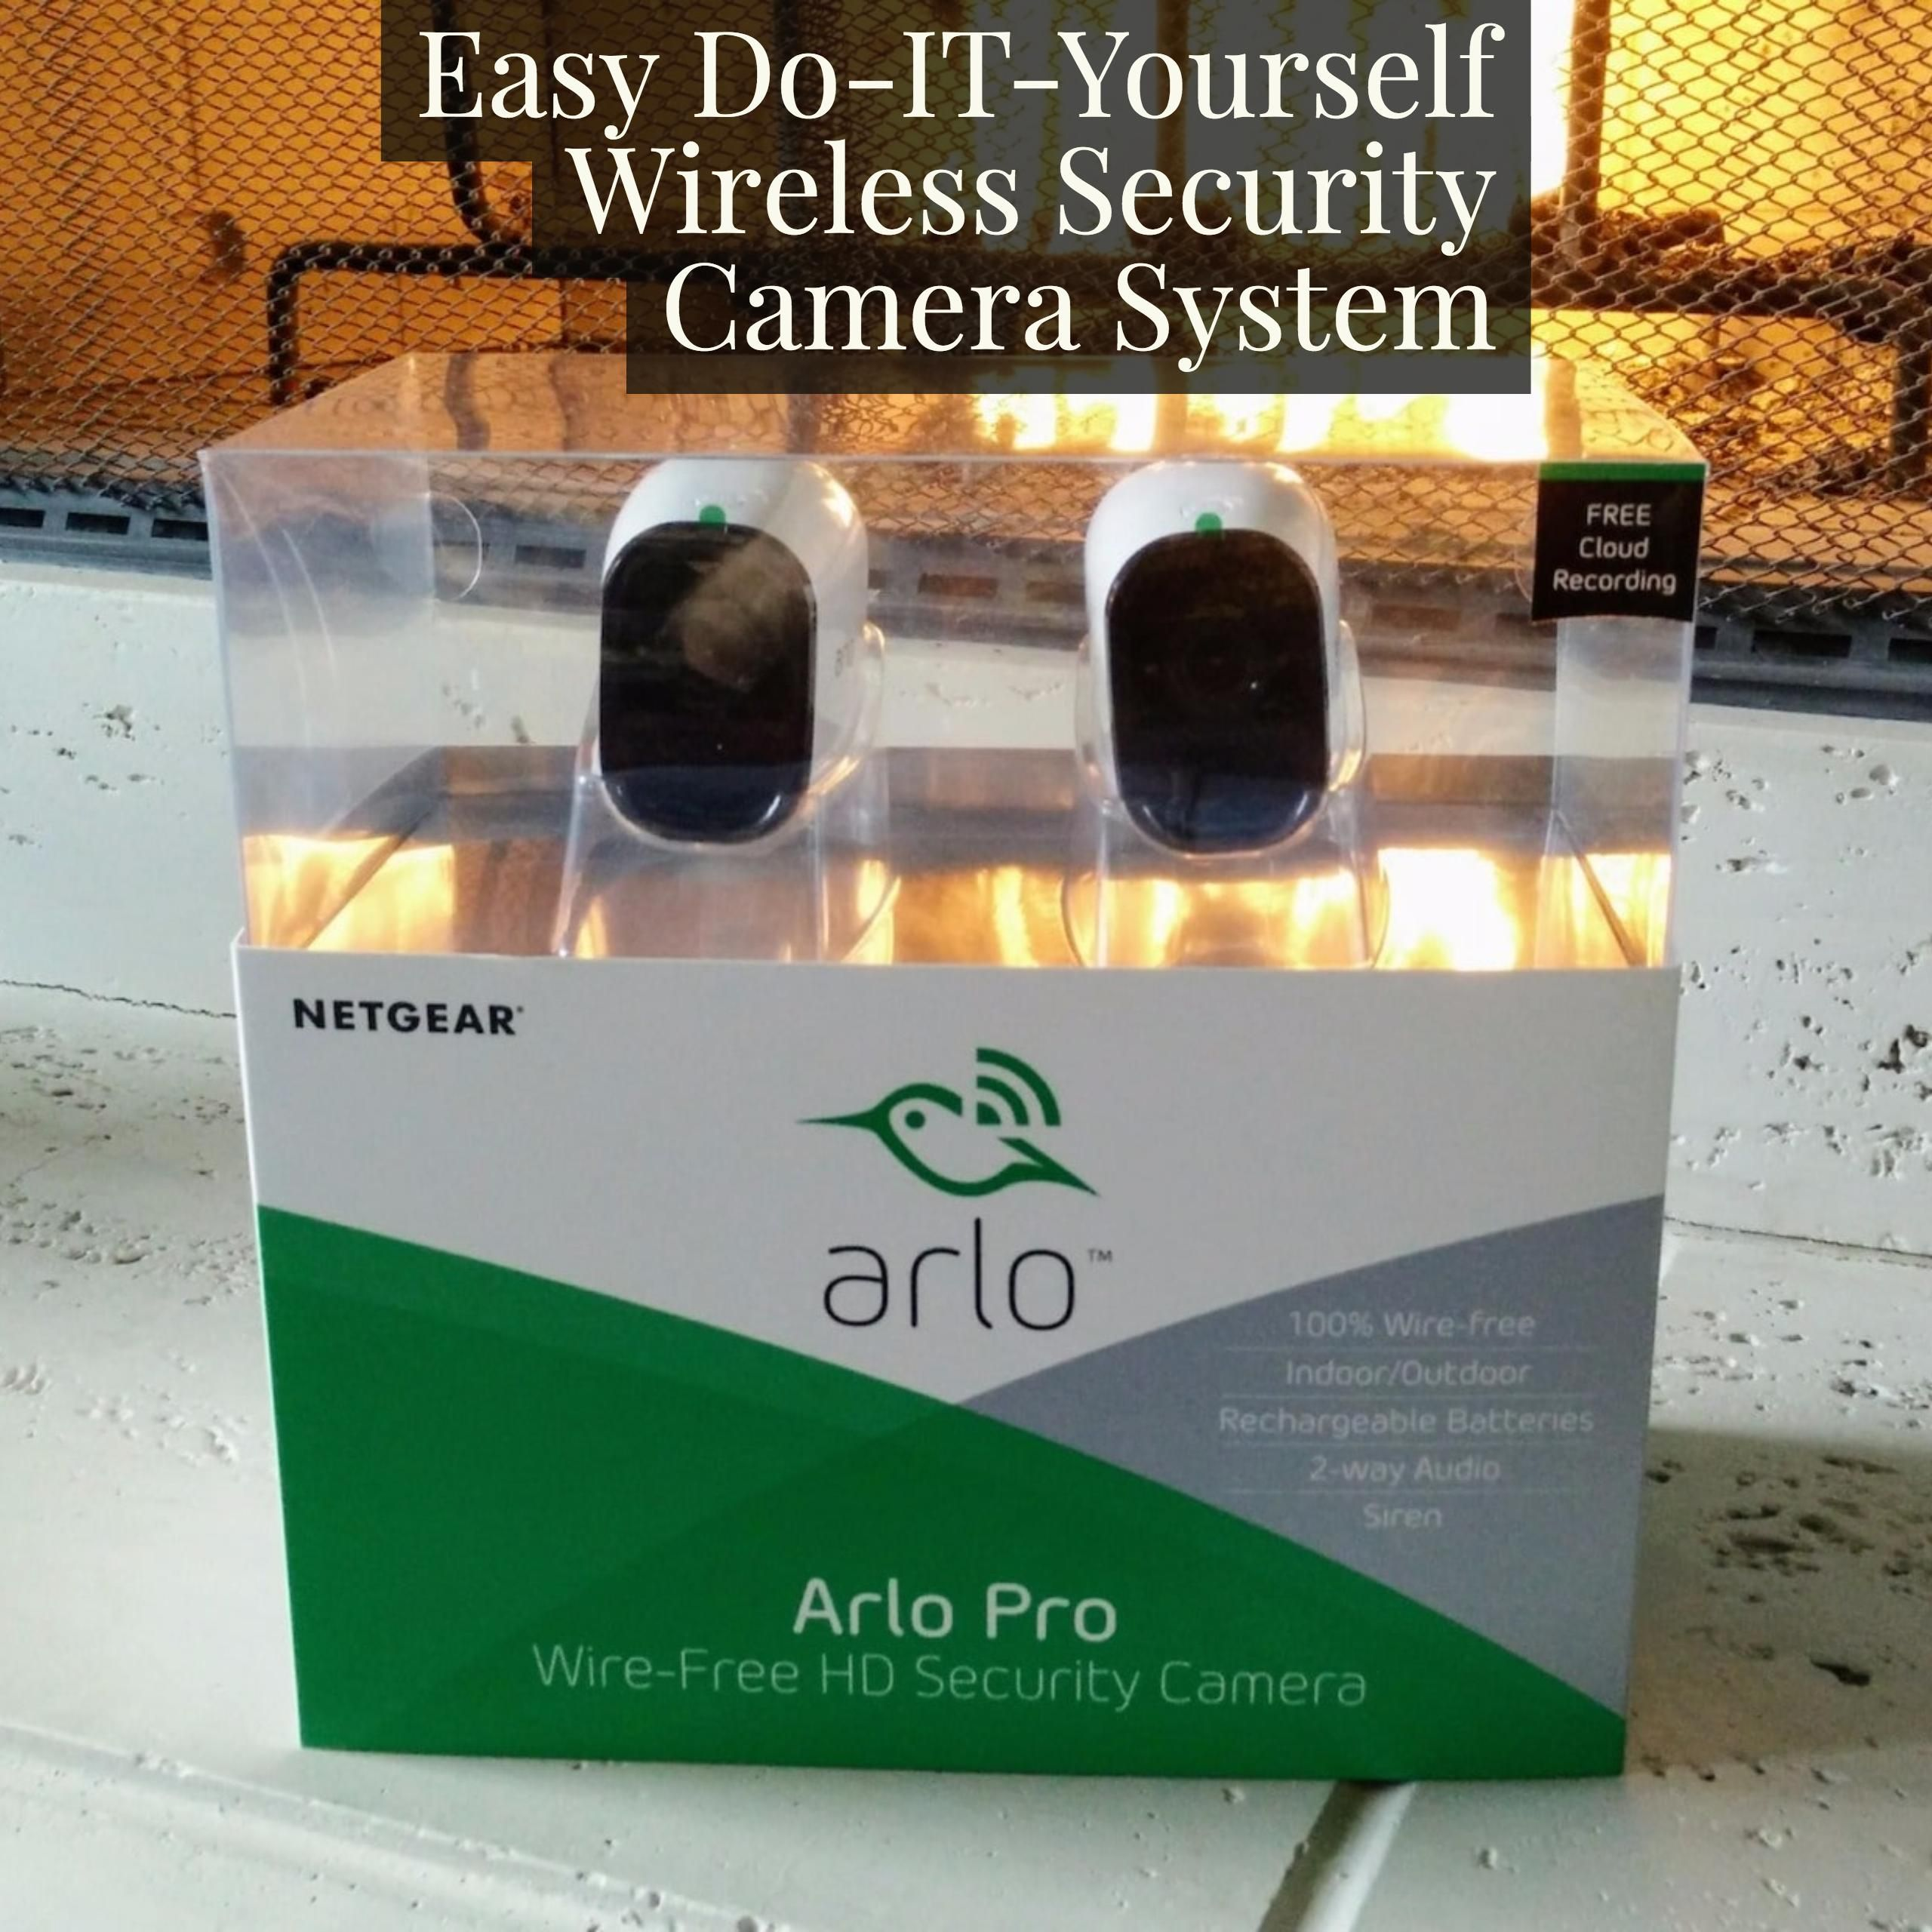 Netgear arlo pro wireless security camera system review easy netgear arlo pro wireless security camera system review easy home setup do it yourself solutioingenieria Choice Image